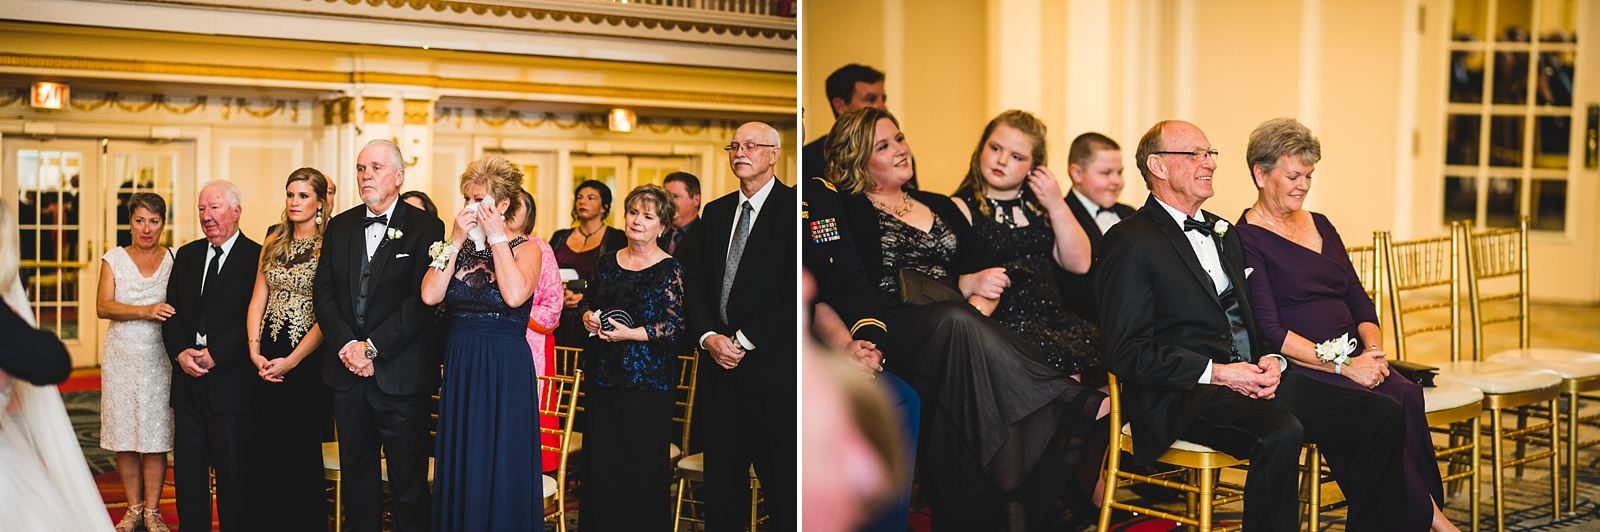 23 parents reactions at wedding - Drake Chicago Luxury Wedding Photography // Kate + Royce